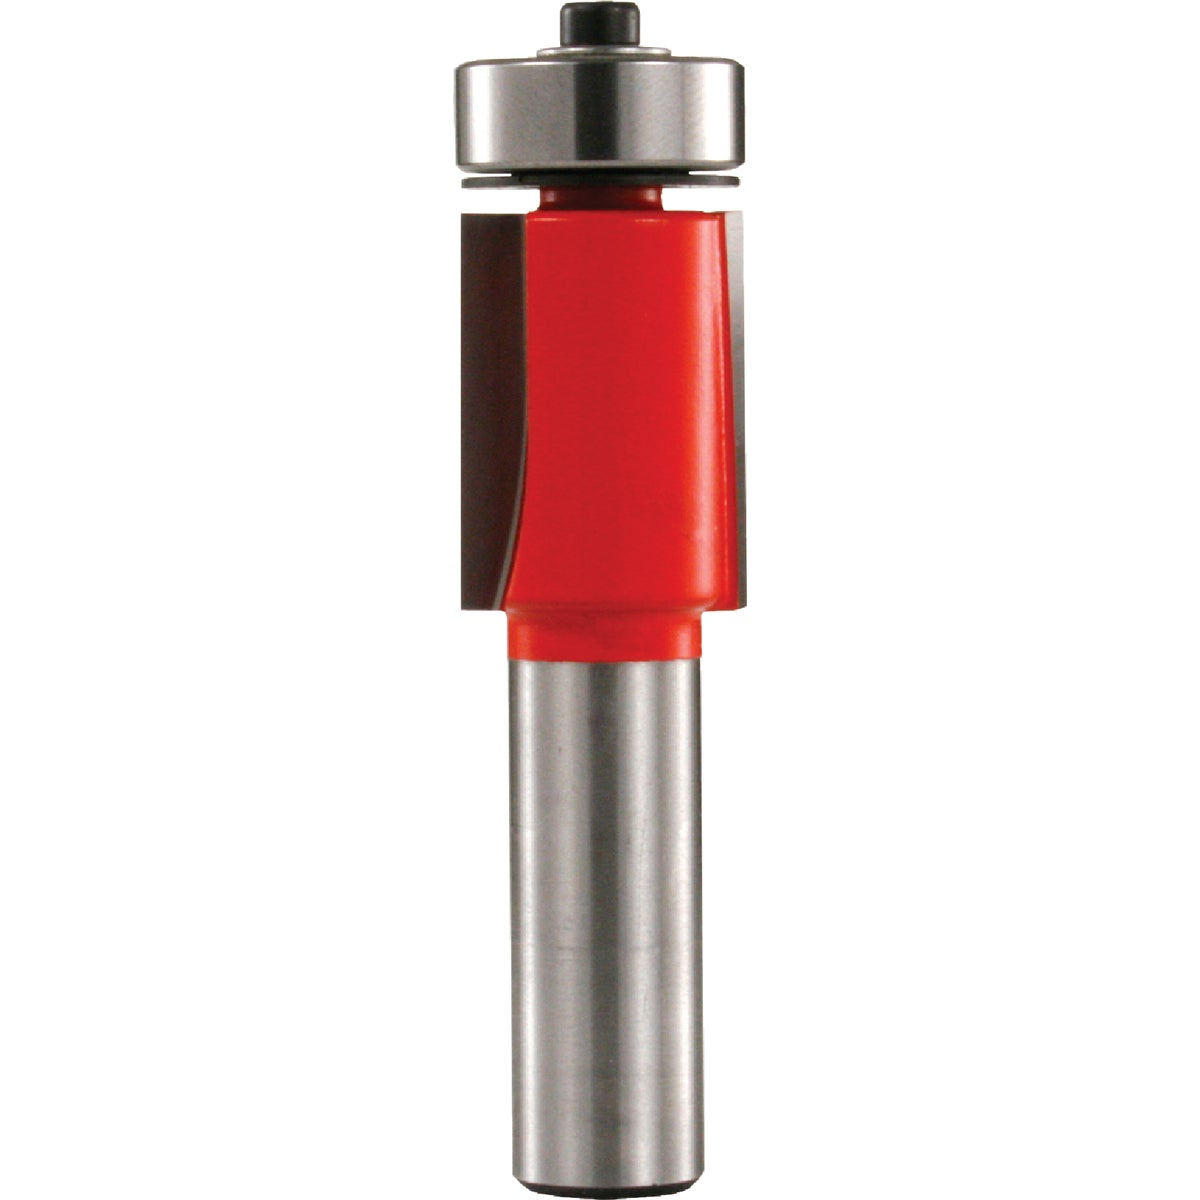 "3/4""HELIX FLUSH TRIM BIT - 42-202 by Freud Inc"